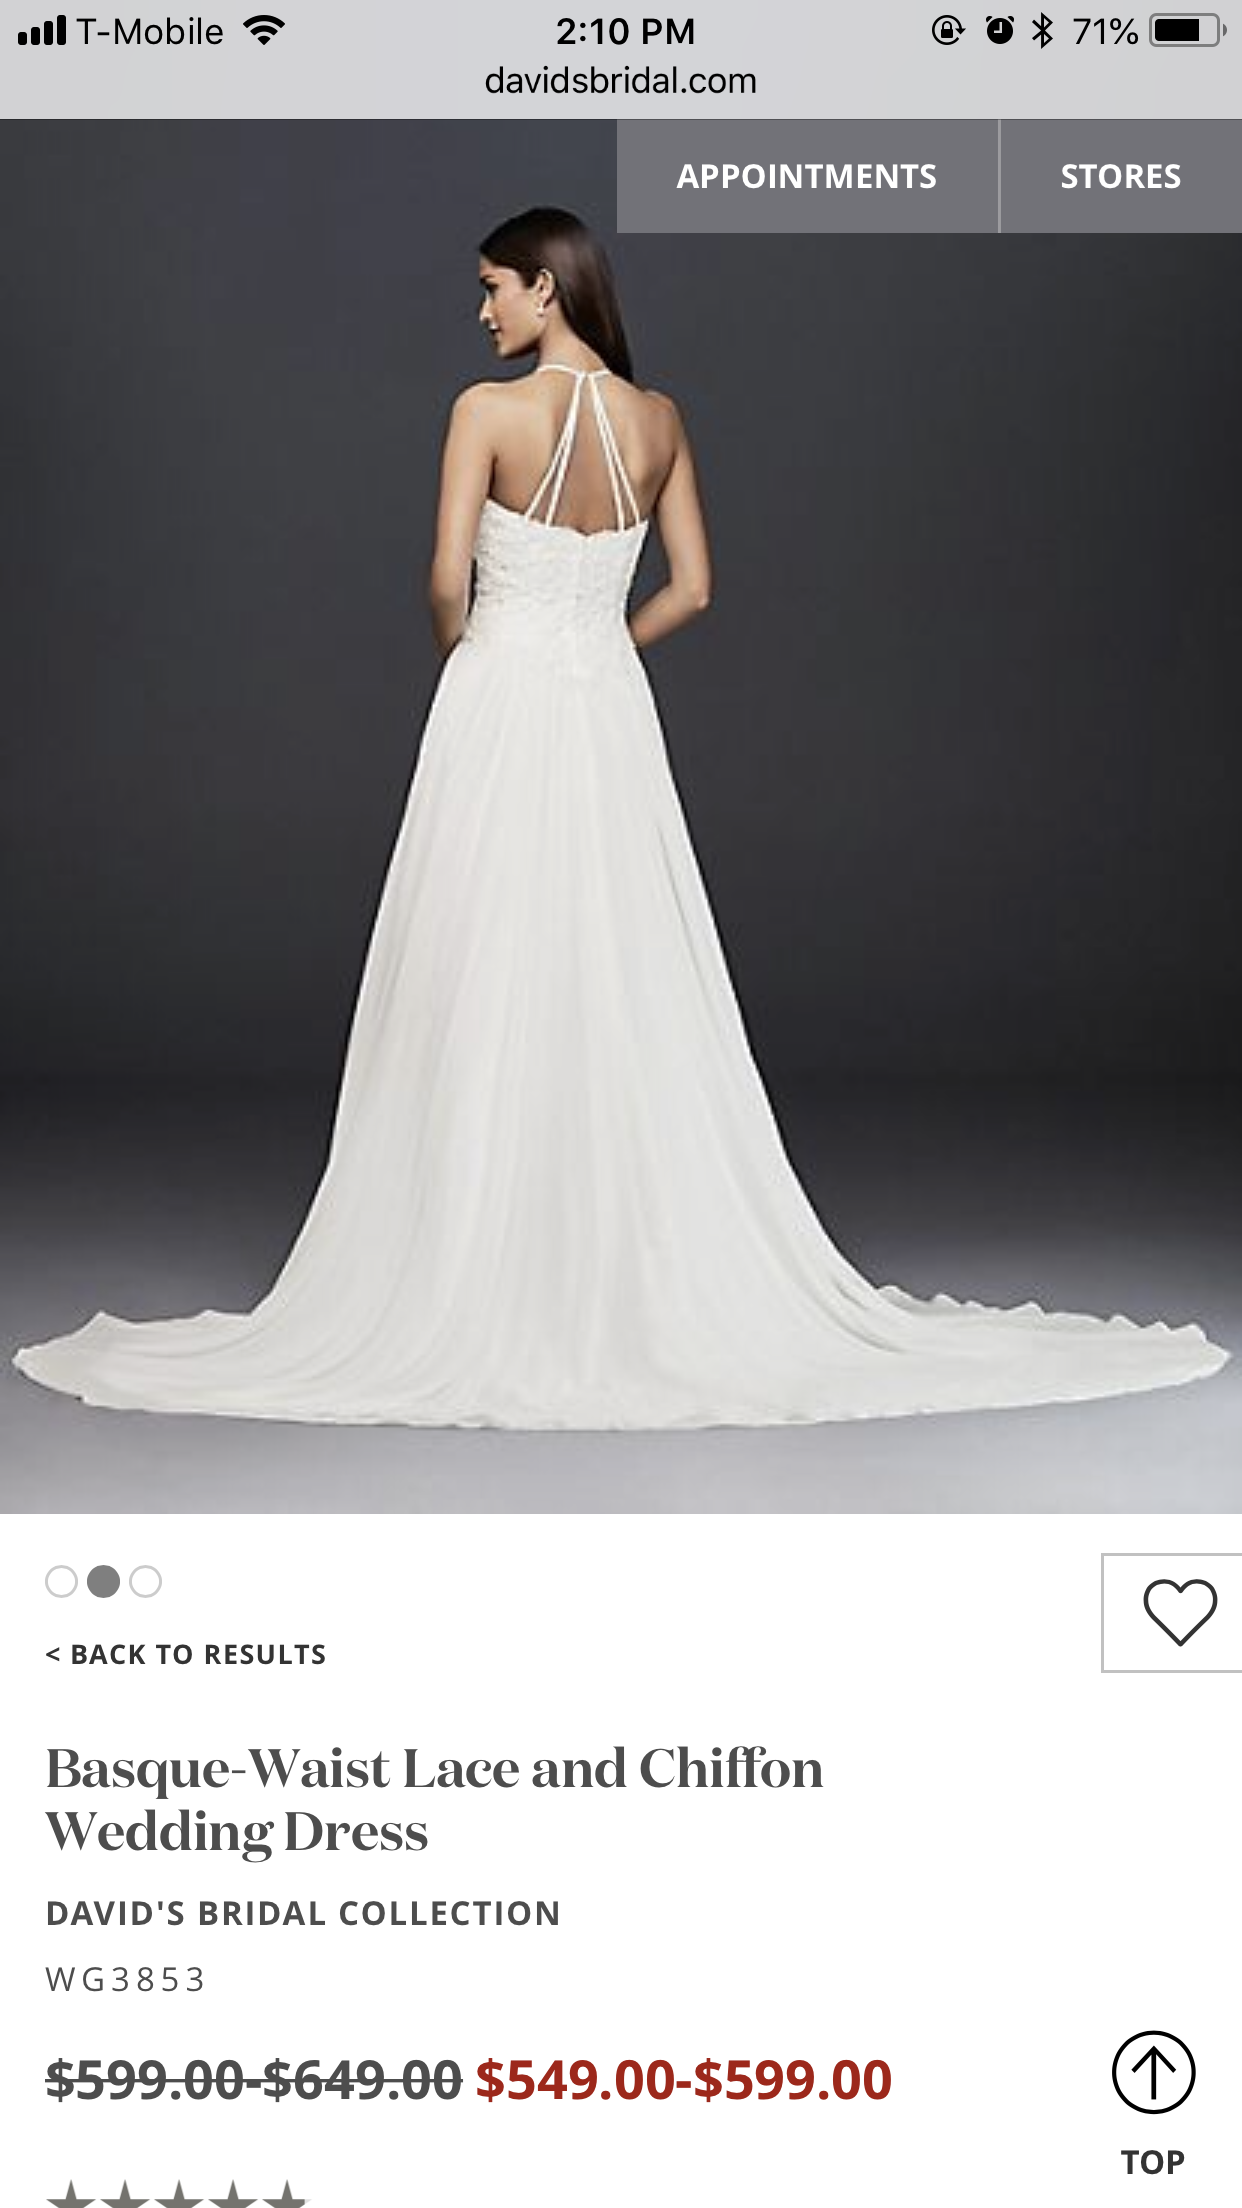 Basque-waist Lace And Chiffon Wedding Dress